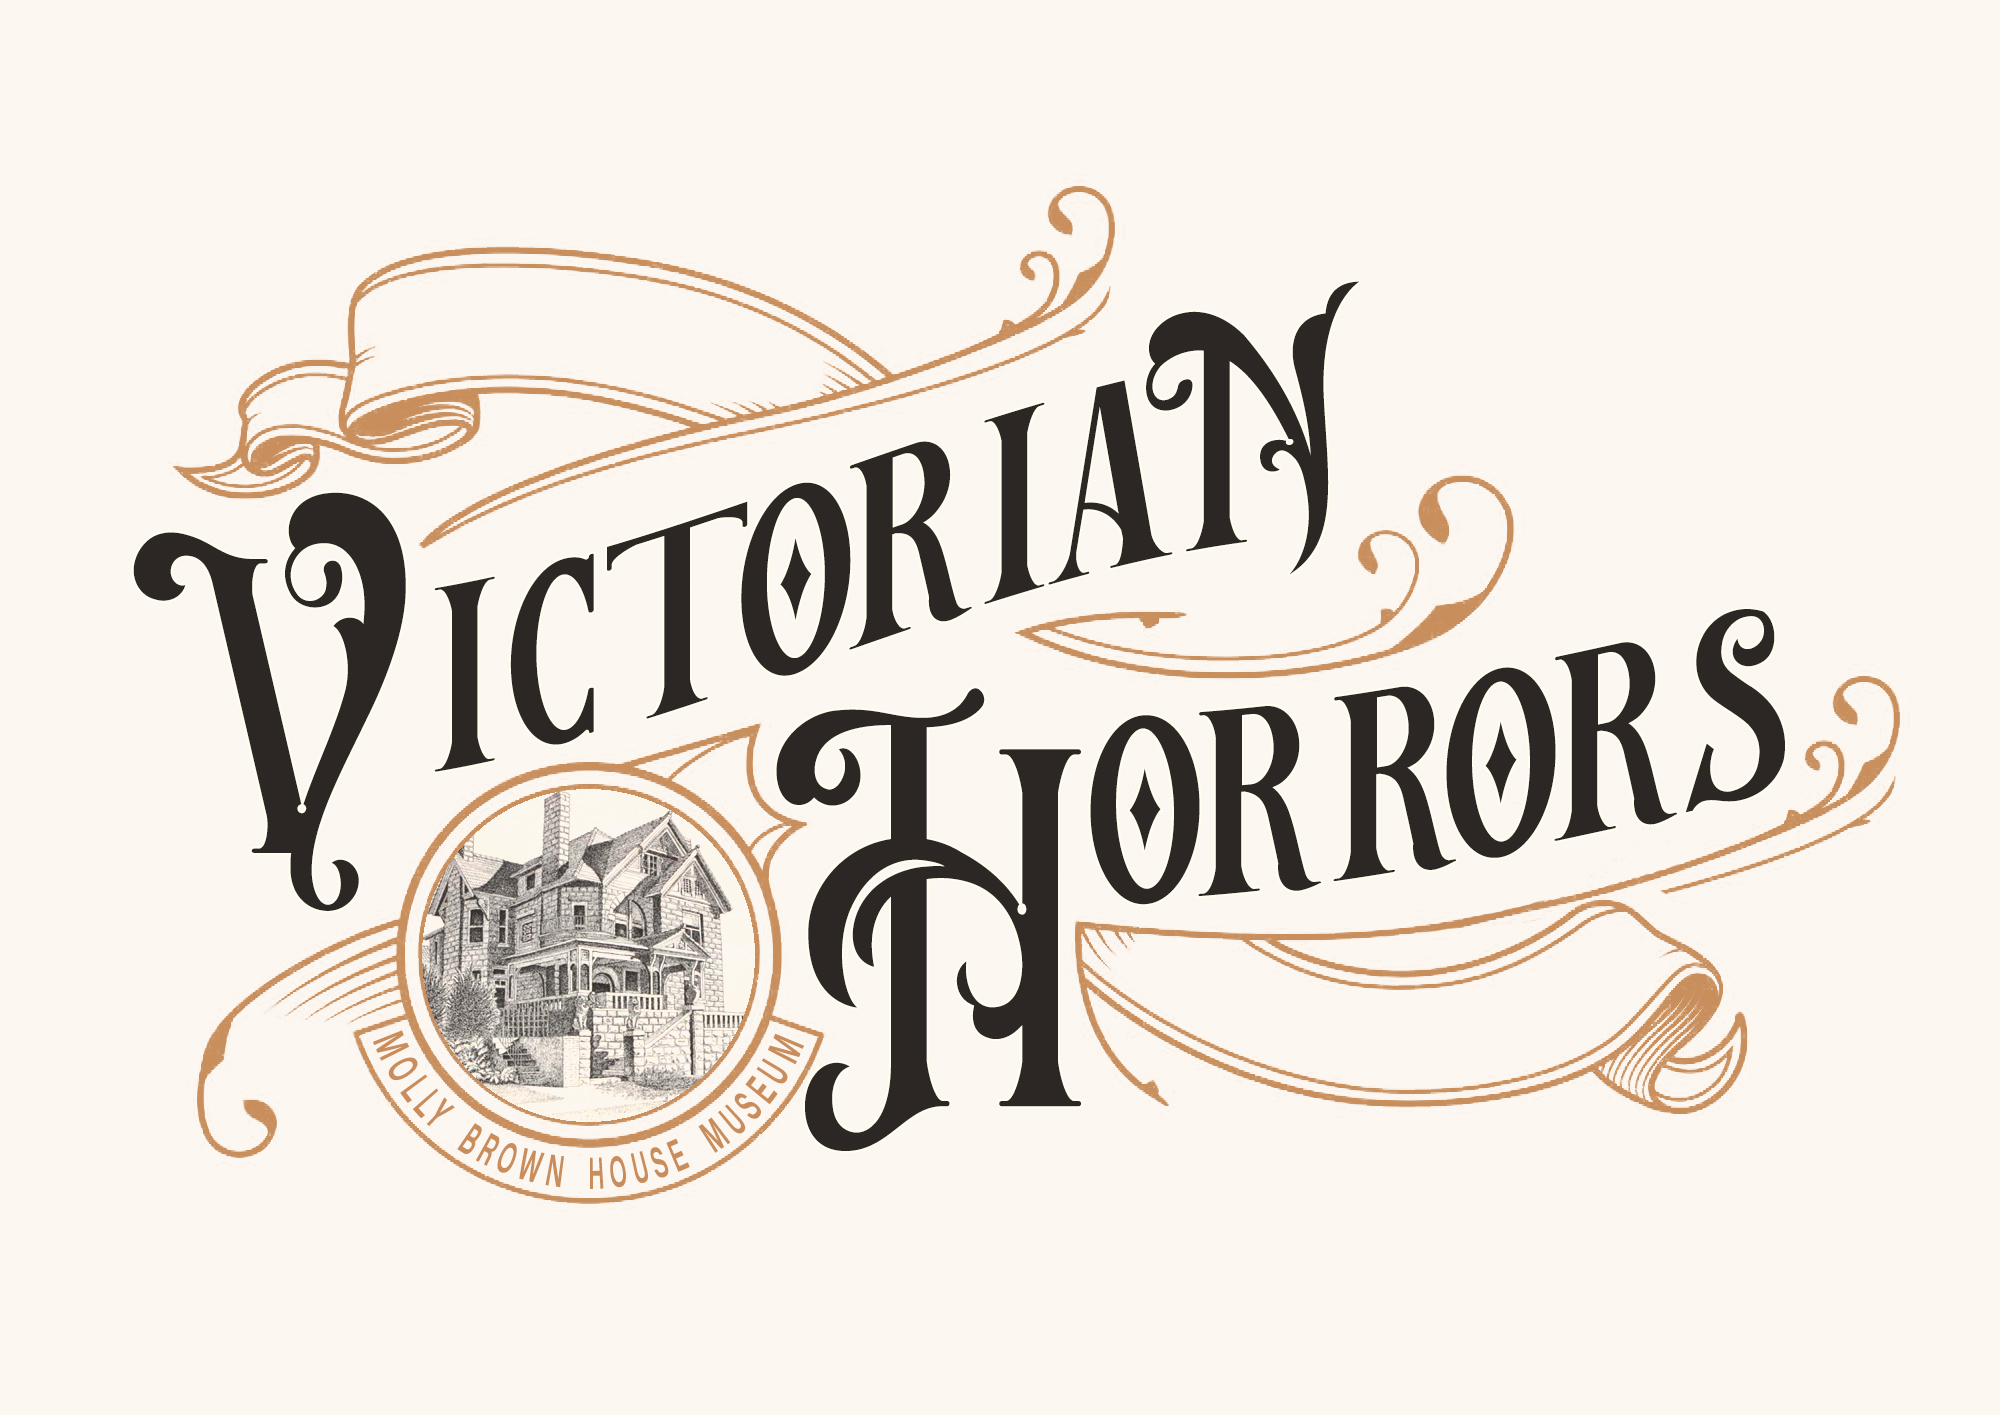 Victorian Horrors 2020